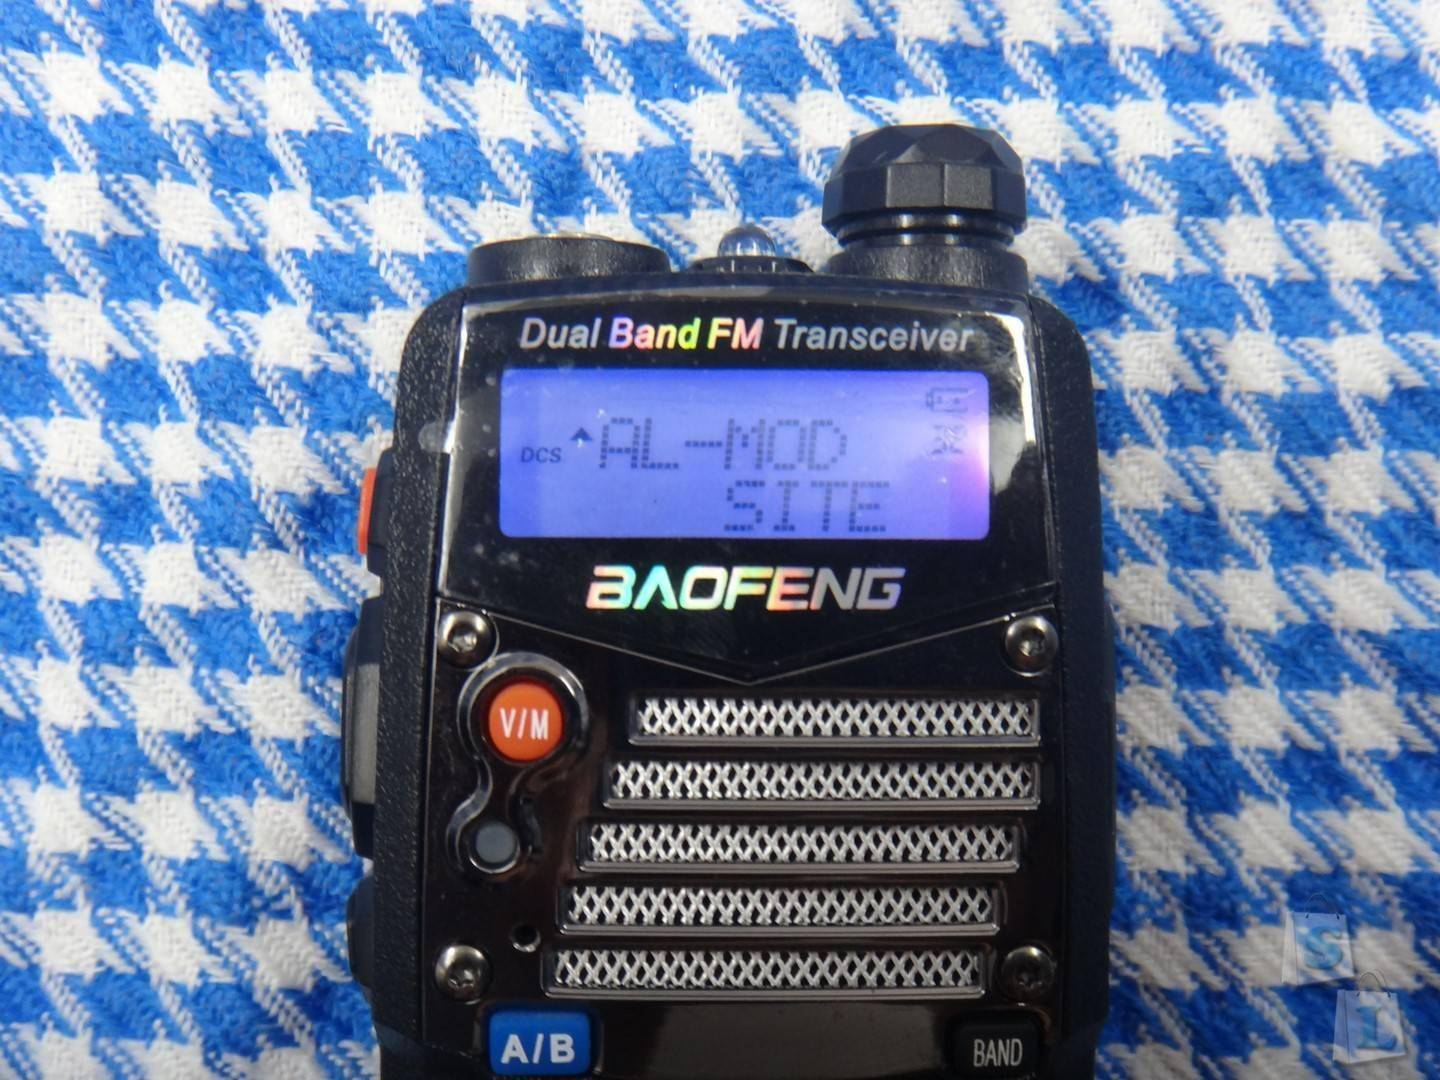 GearBest: Обзор двухдиапазонной радиостанции Baofeng BF - UV5R A Plus Portable Dual Band Two